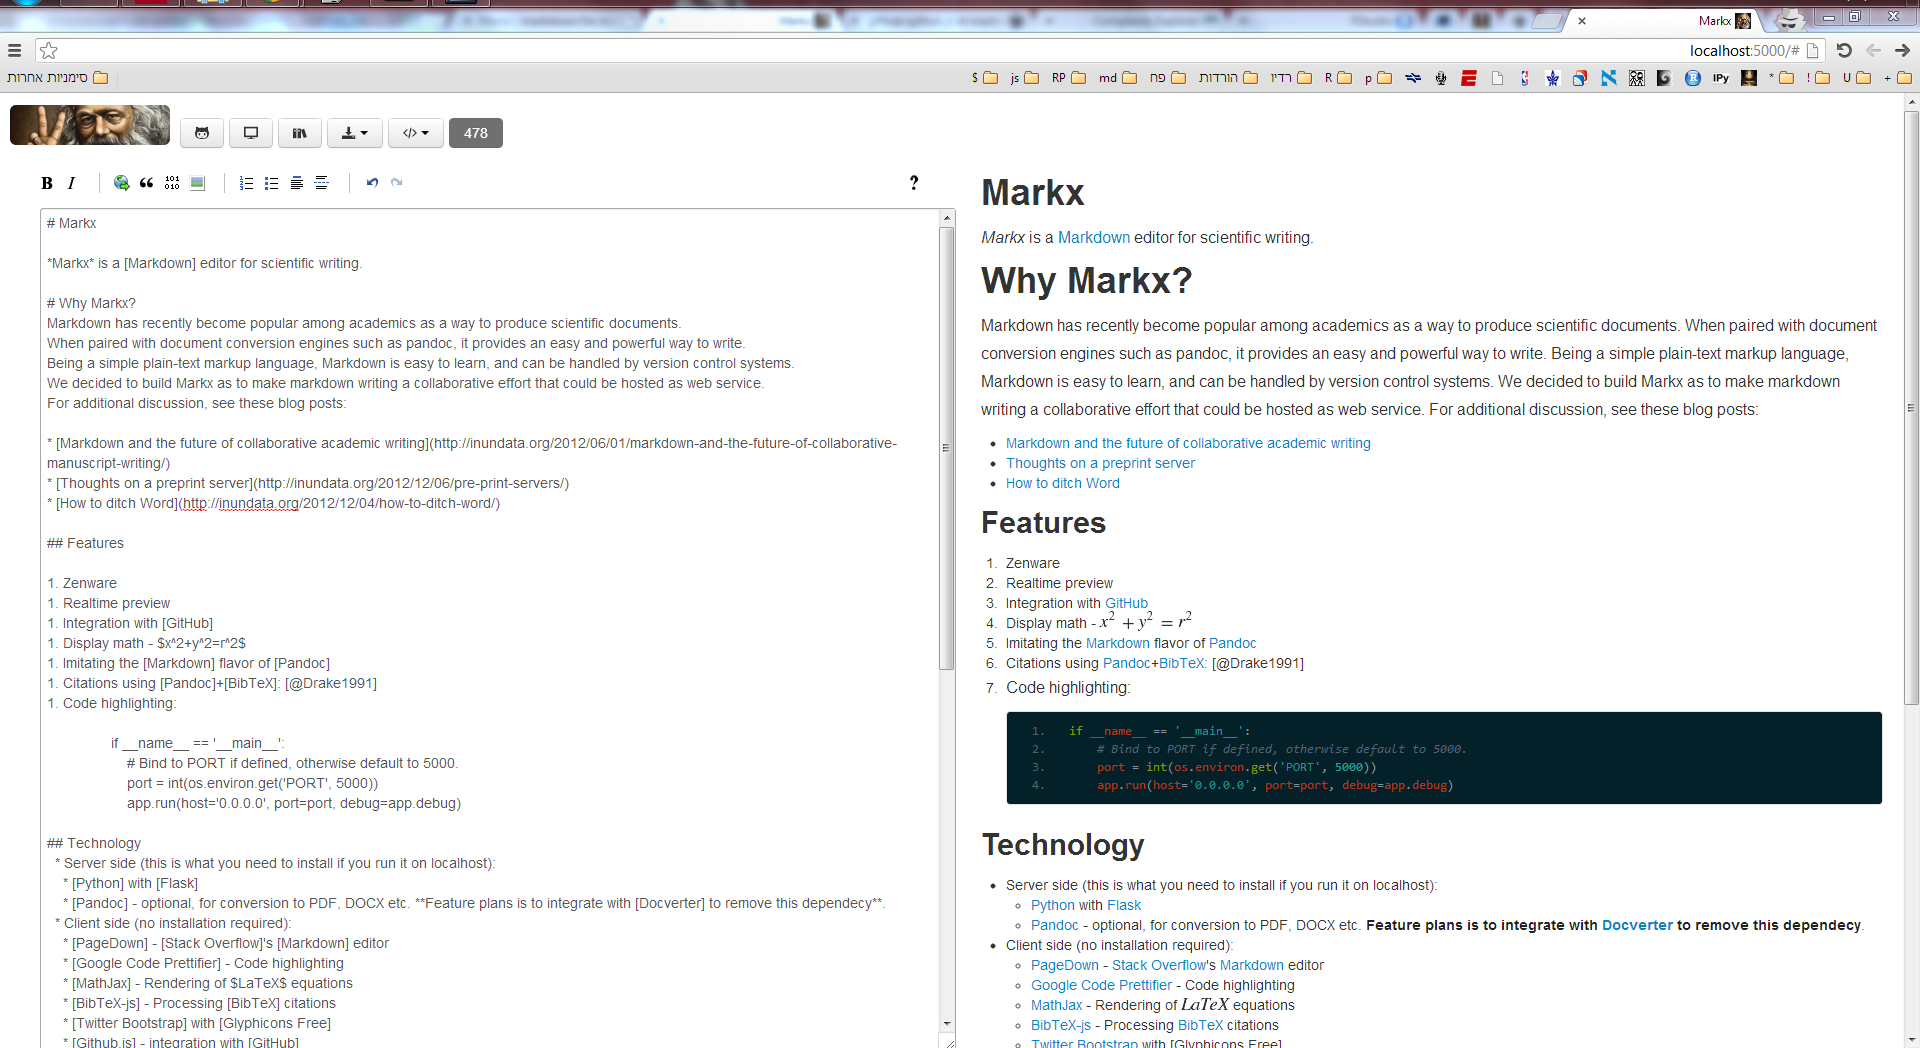 GitHub - yoavram/markx: Markdown editor for scientific